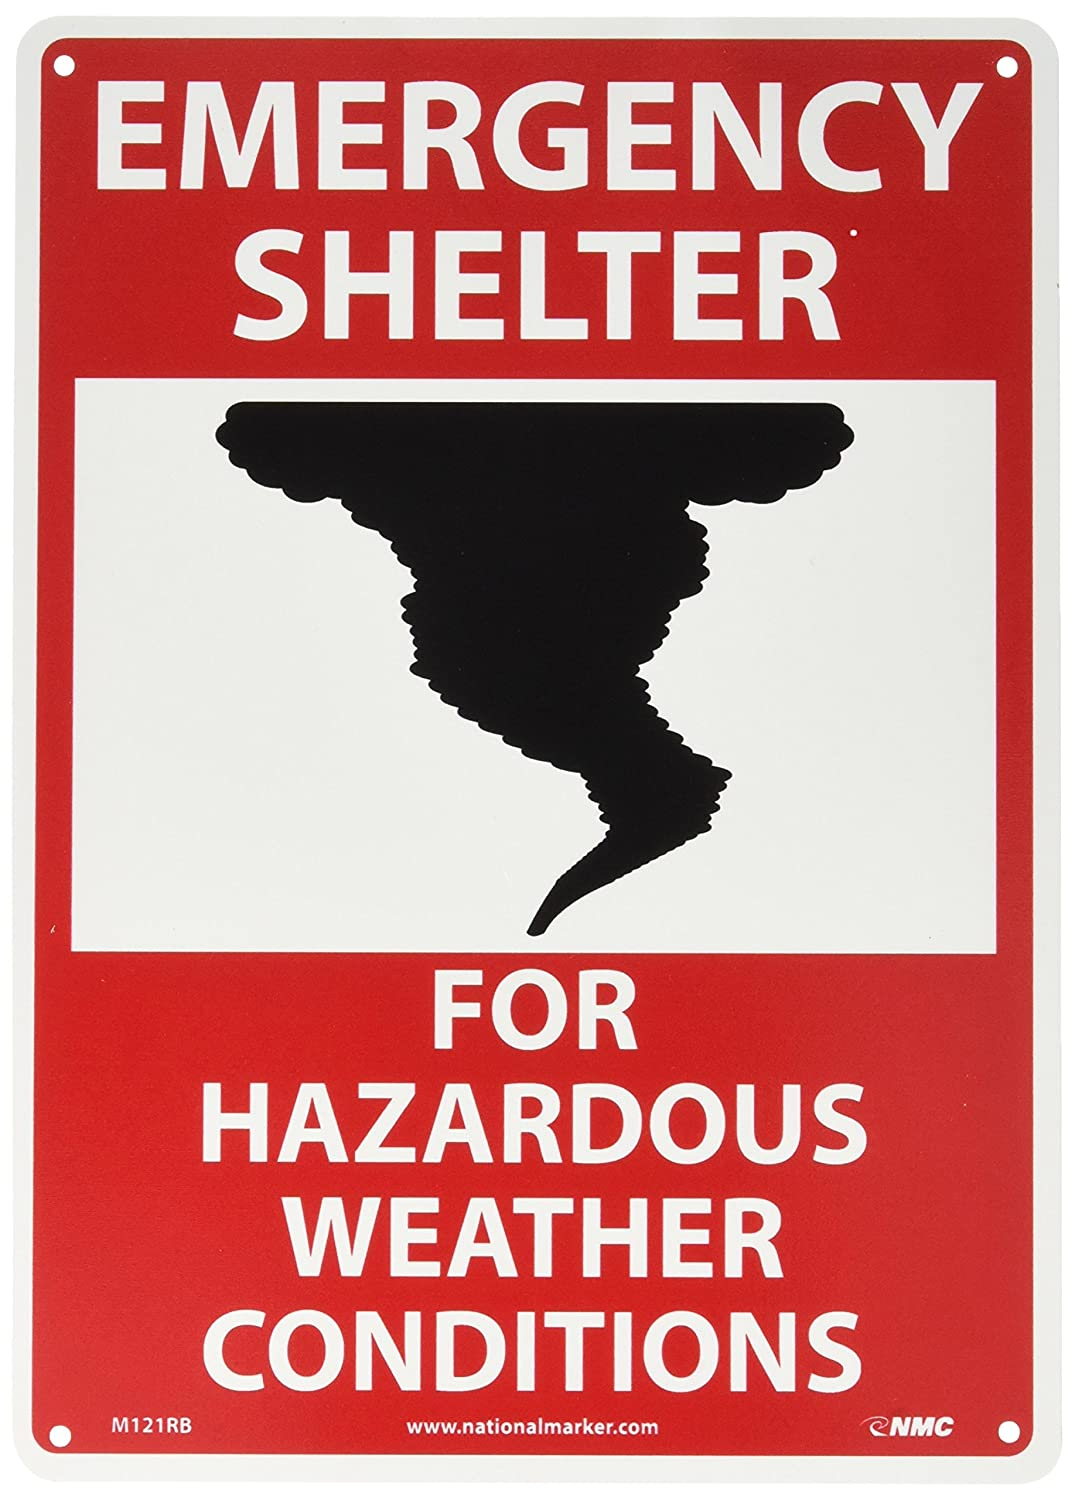 NMC M121RB Emergency and First Aid Sign with Graphic Legend EMERGENCY SHELTER FOR HAZARDOUS WEATHER CONDITIONS Black//Red on White Legend EMERGENCY SHELTER FOR HAZARDOUS WEATHER CONDITIONS 10 Length x 14 Height 10 Length x 14 Height Rigid Plastic